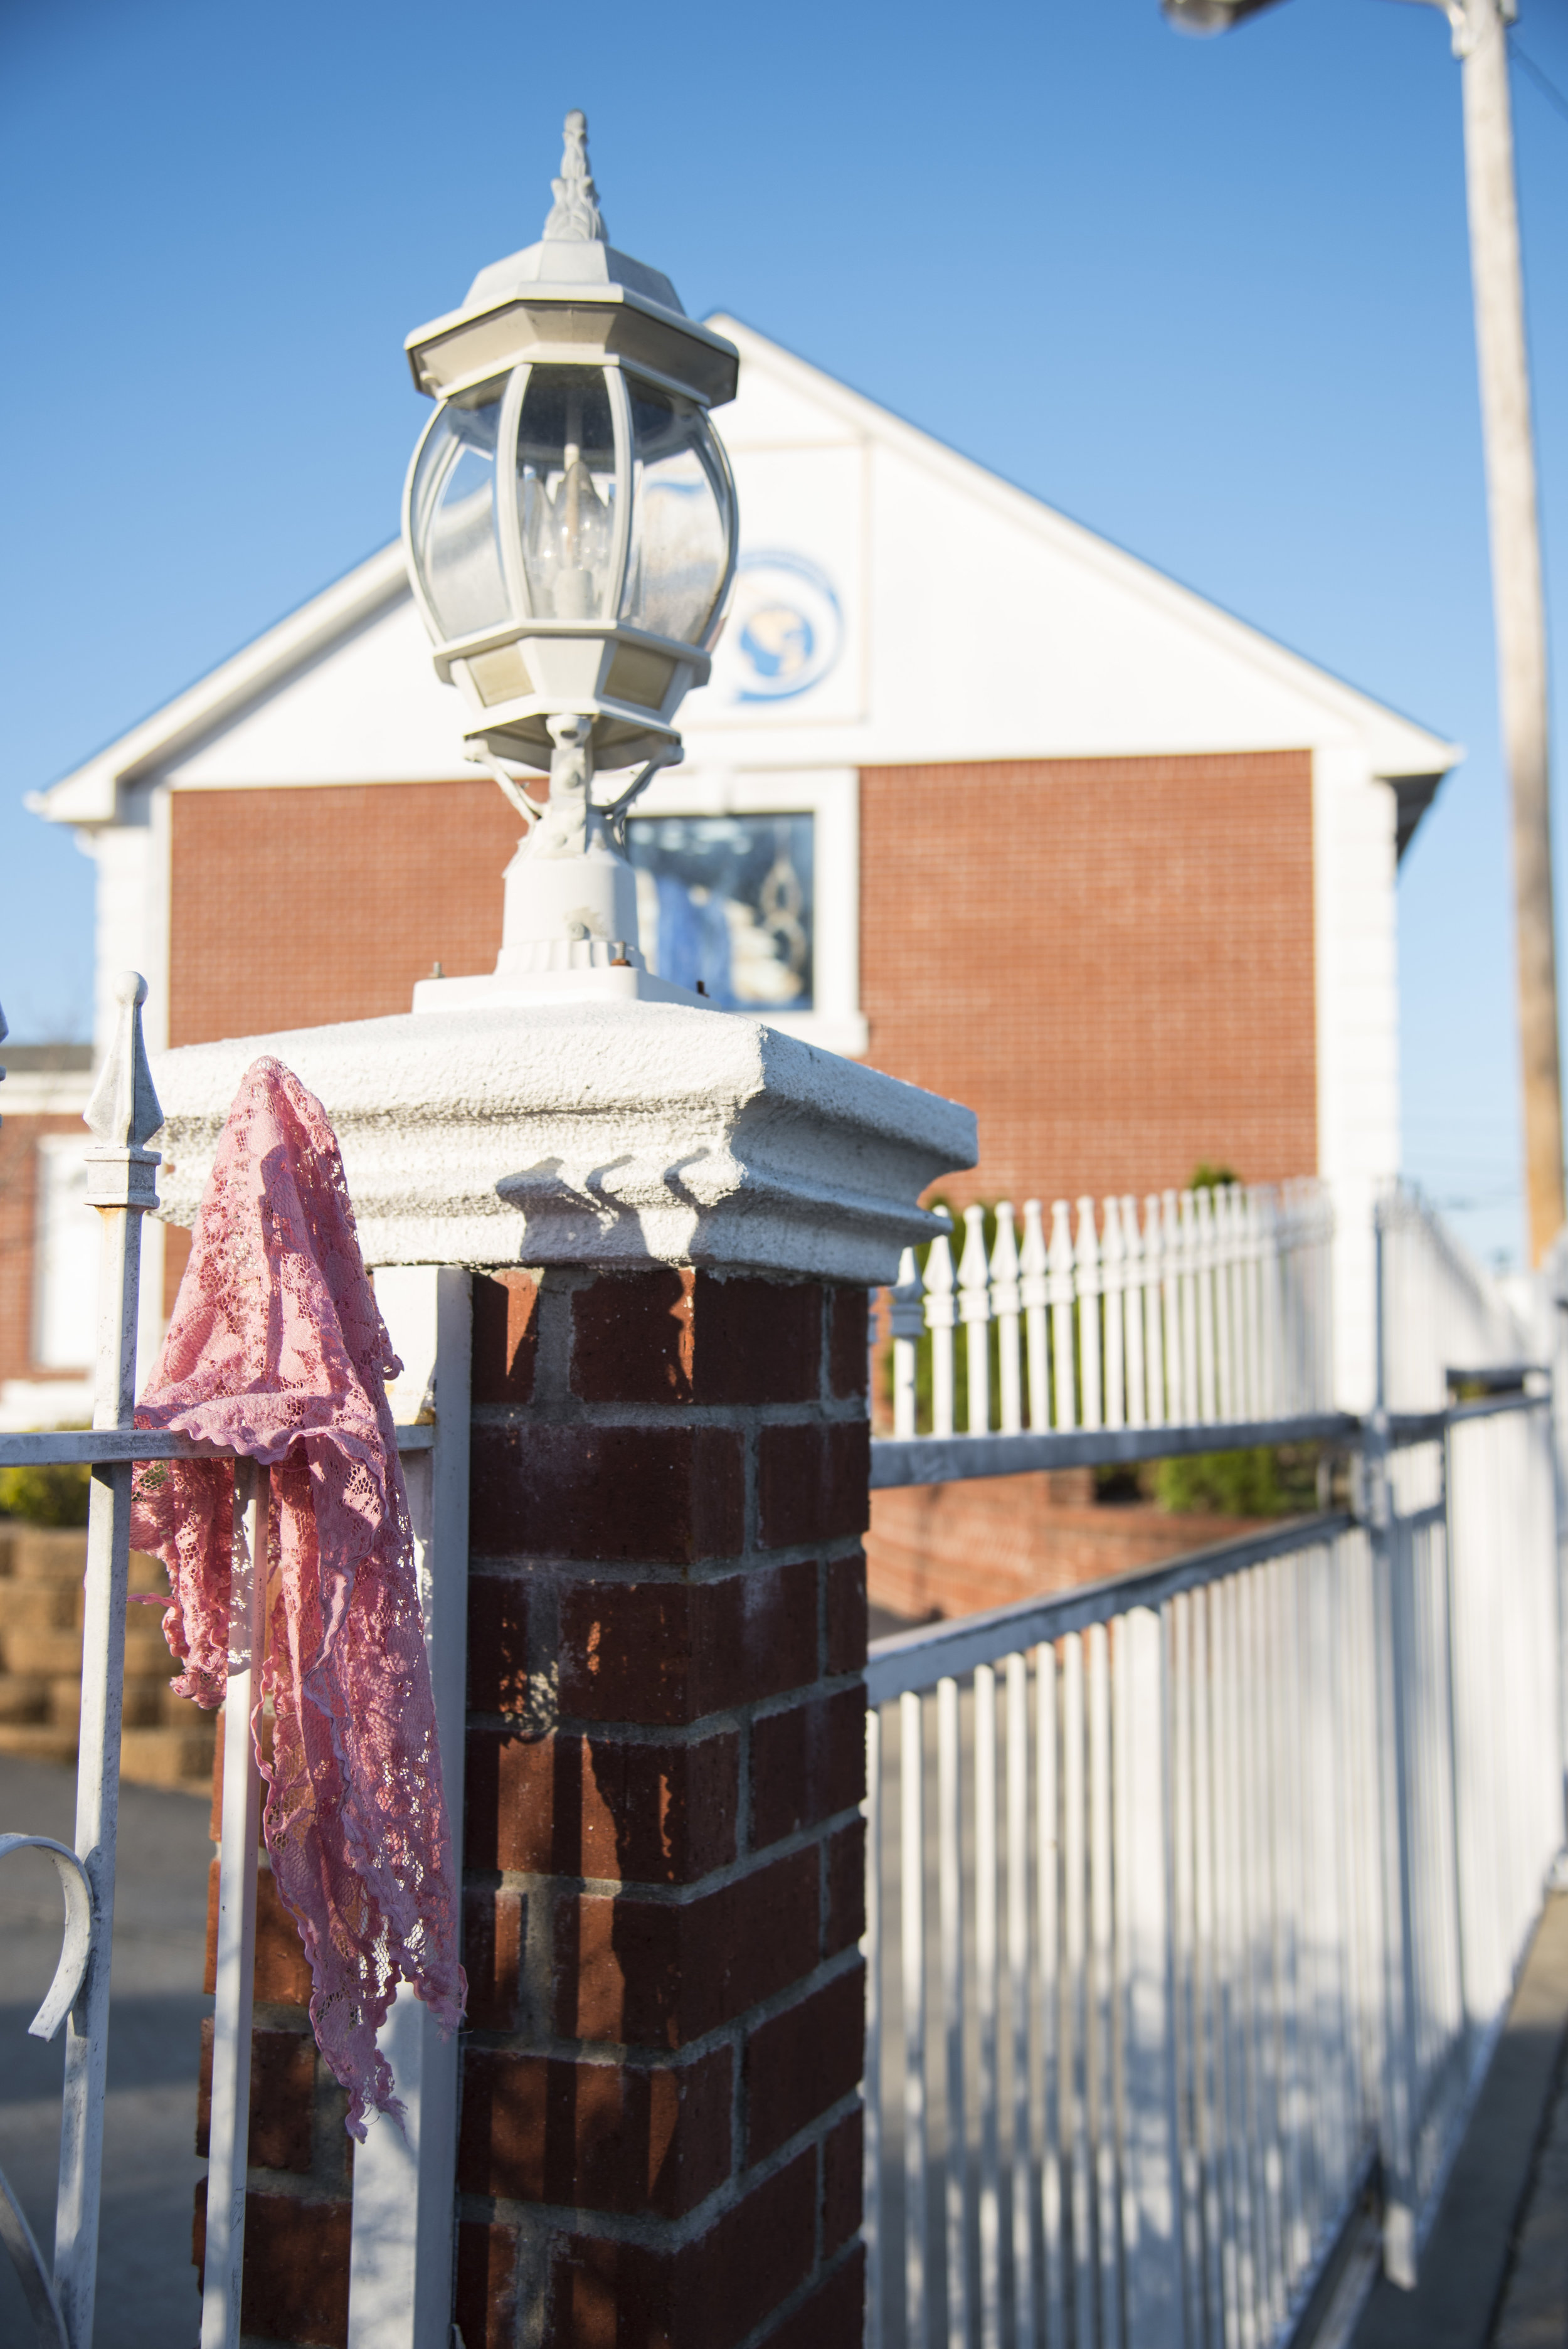 A pañuelo, or headscarf, hangs from the back gate of the Light of the World church courtyard. Women wear the pañuelos inside the sanctuary as a sign of humility.